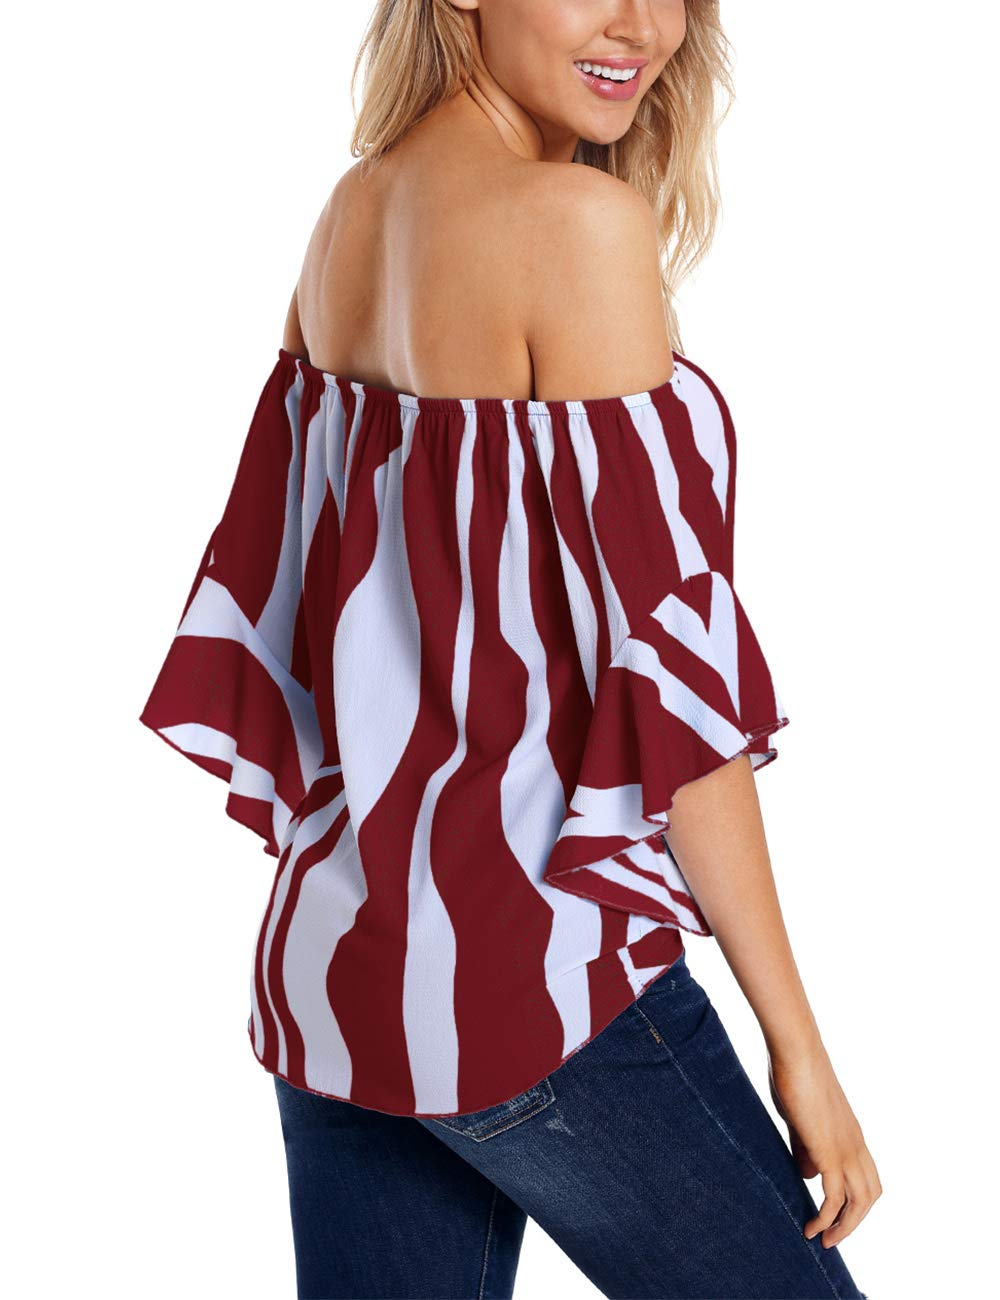 RSM &CHENG Women's Striped Off Shoulder Bell Sleeve Shirt Tie Knot Casual Blouses Tops(Stripe Red,L)